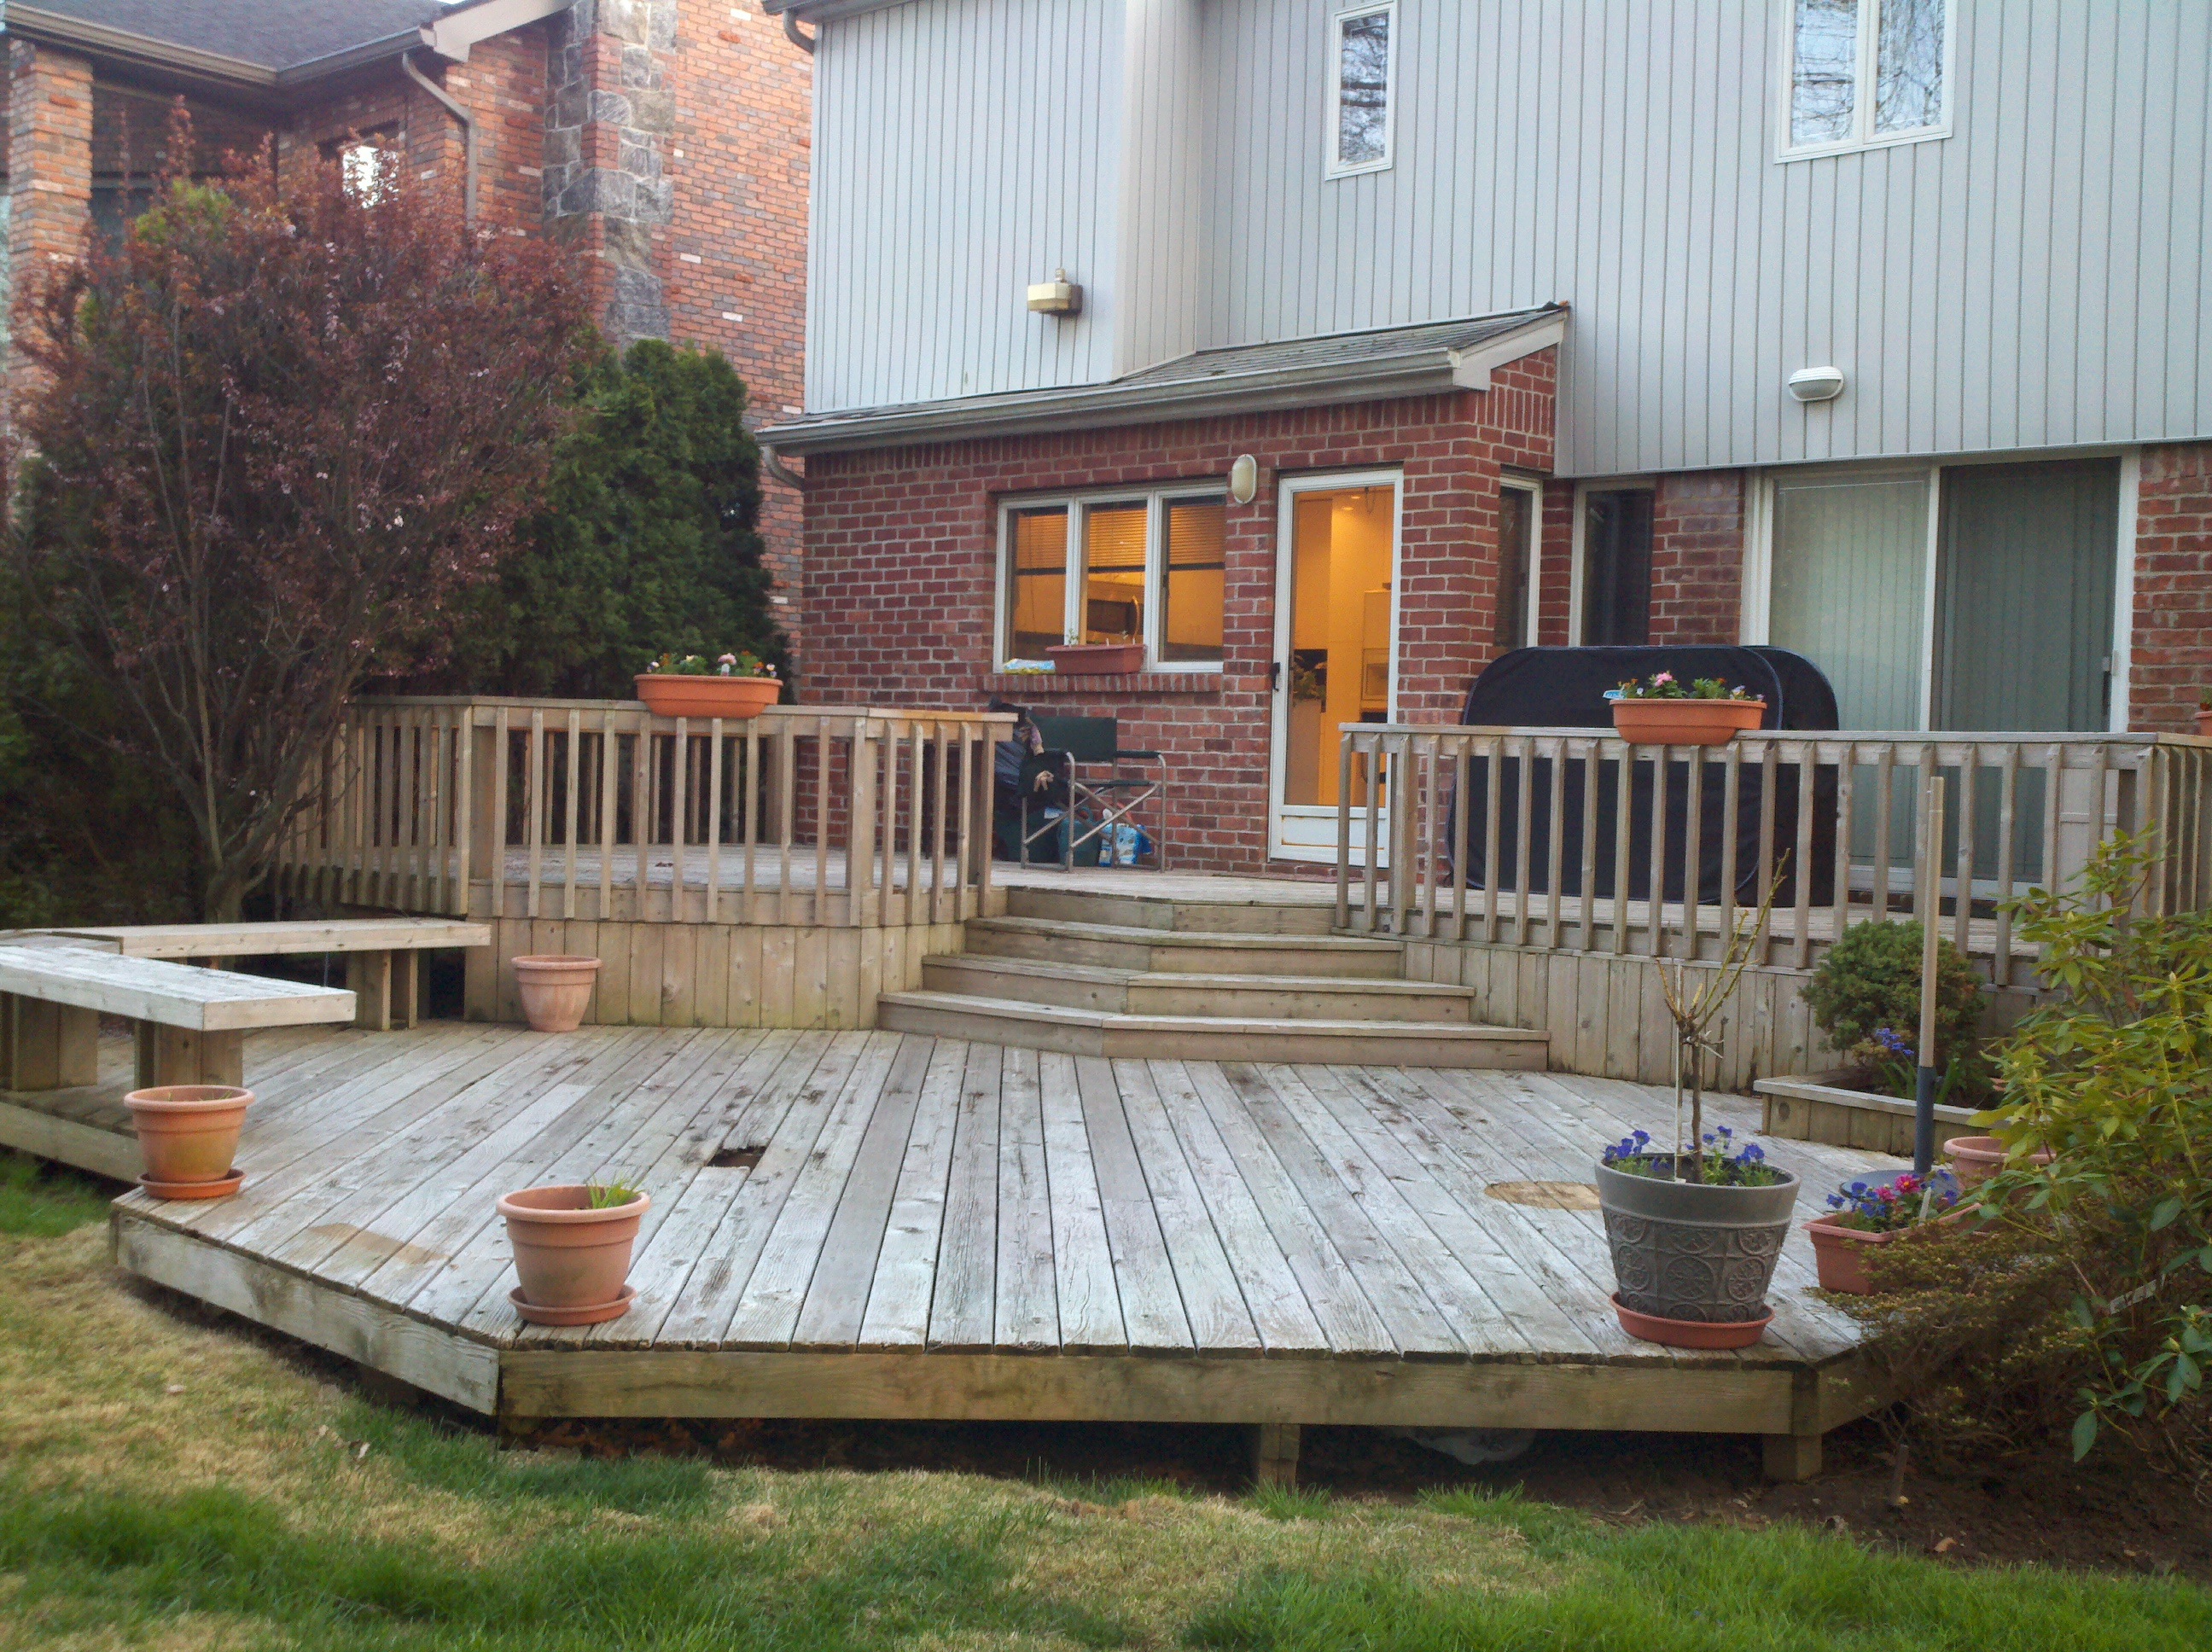 Deck And Patio Design Ideas Covered Designs Awesome Backyard Paver in Simple Backyard Deck Ideas